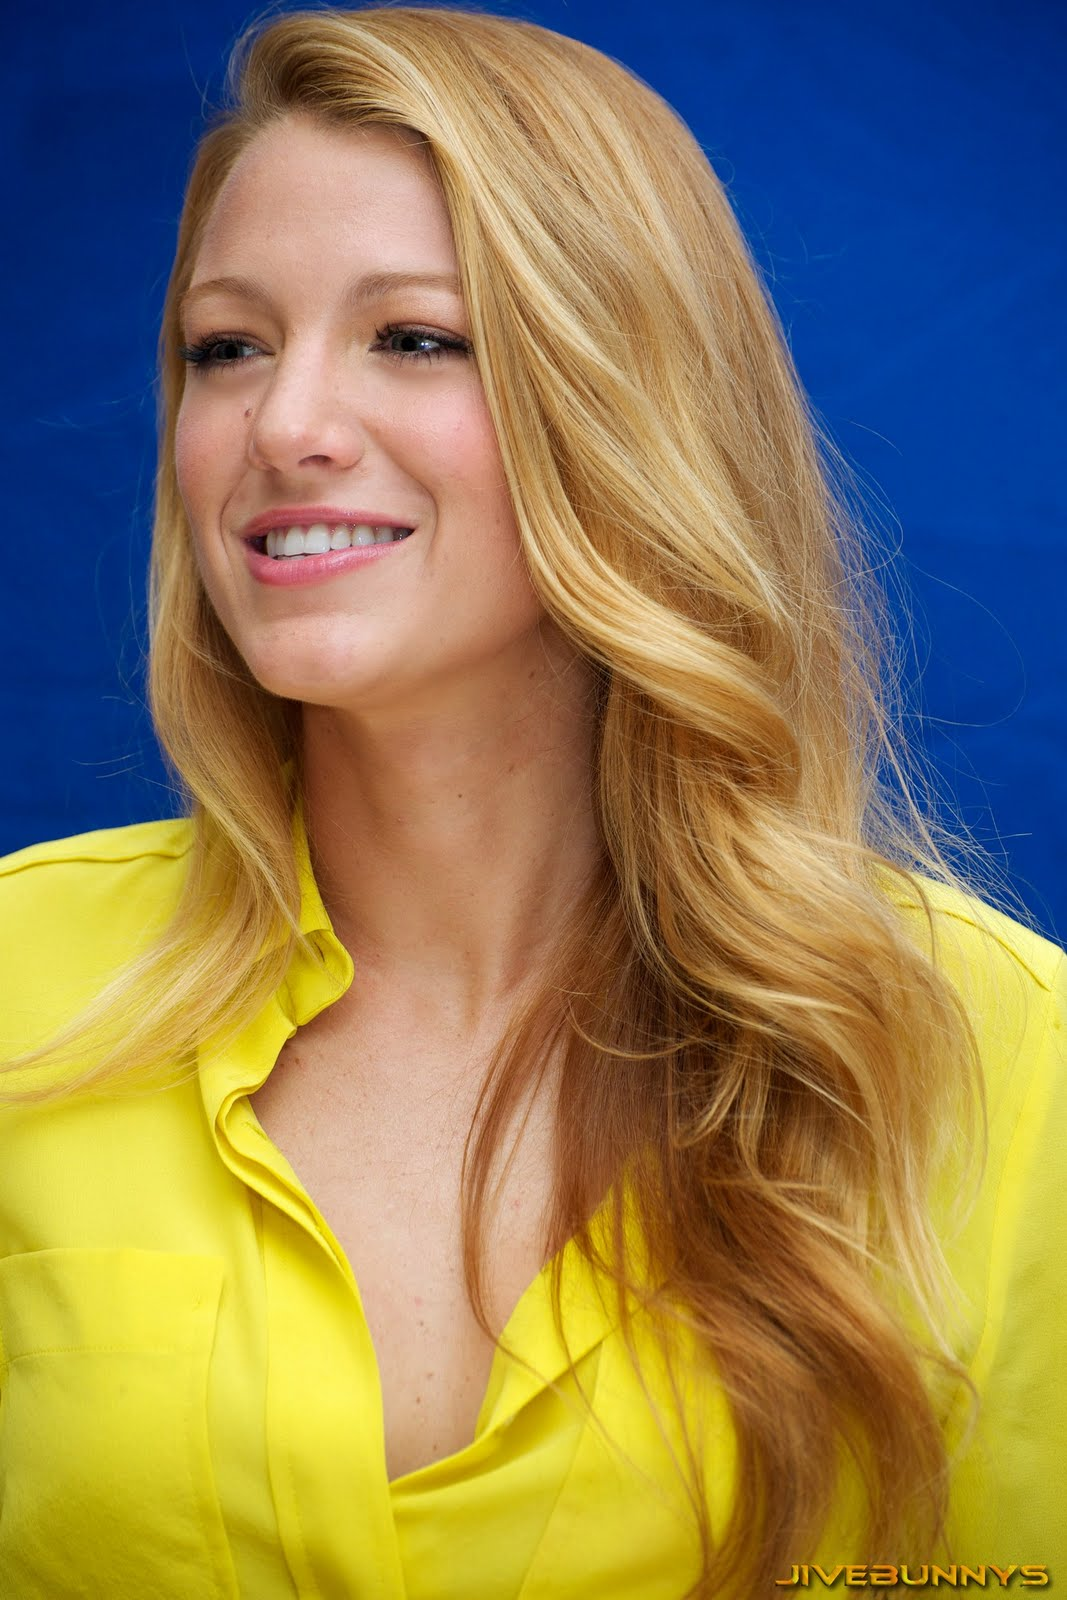 Giovani Attrici Blake Lively Extra Immagini 10